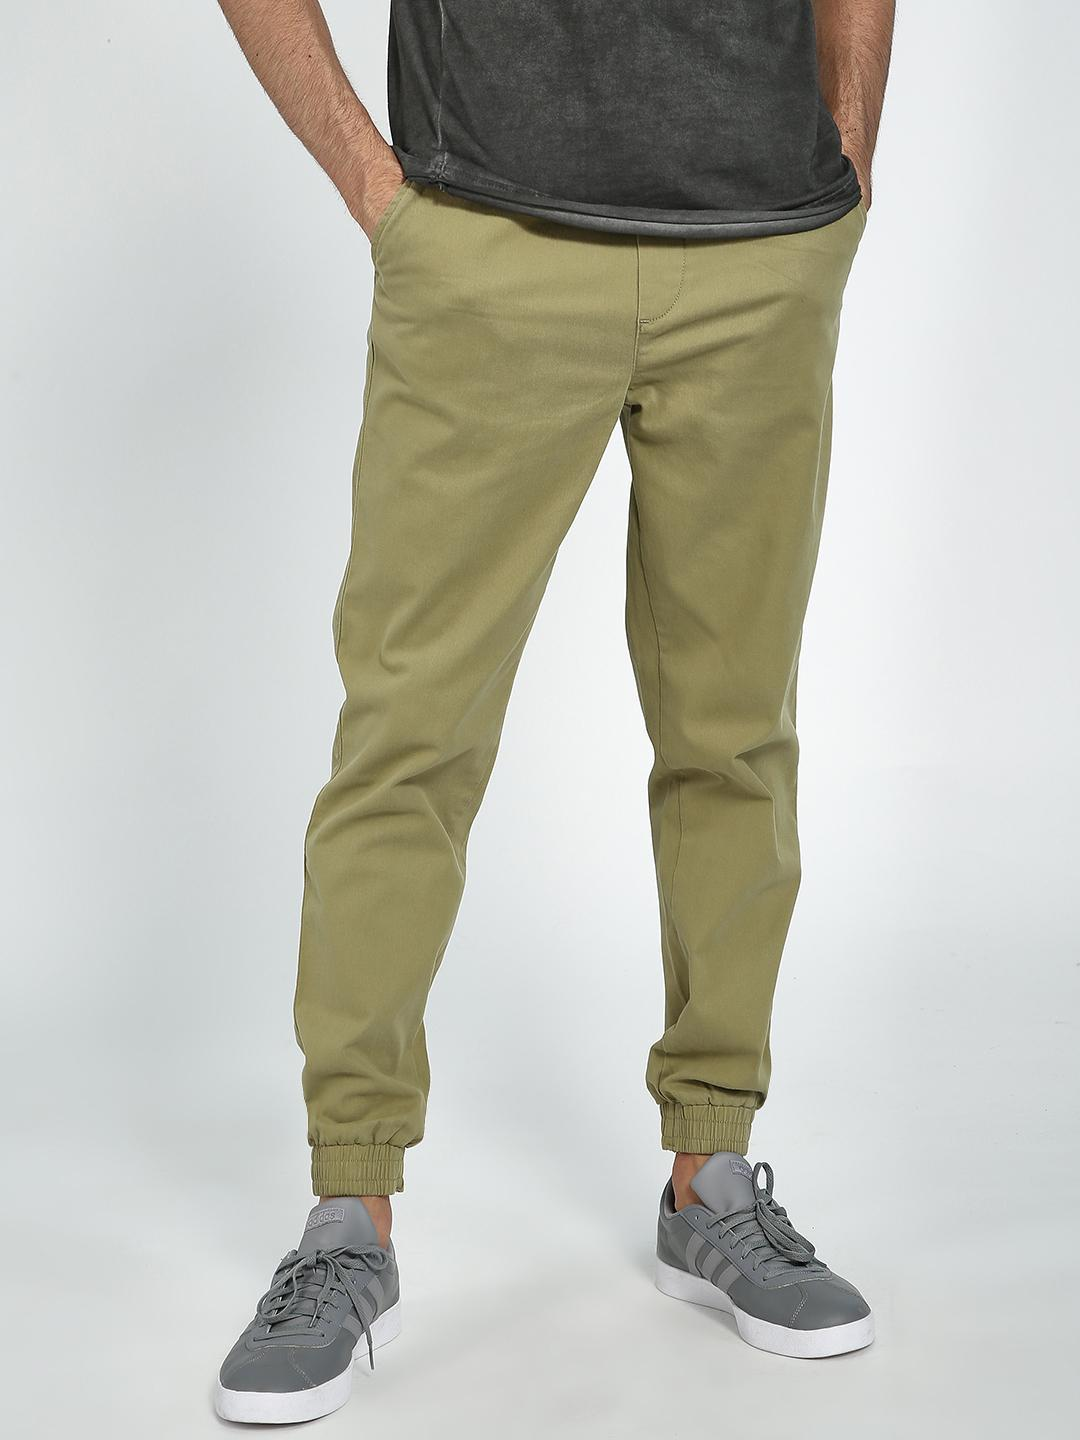 Blue Saint Beige Basic Jog Pants 1